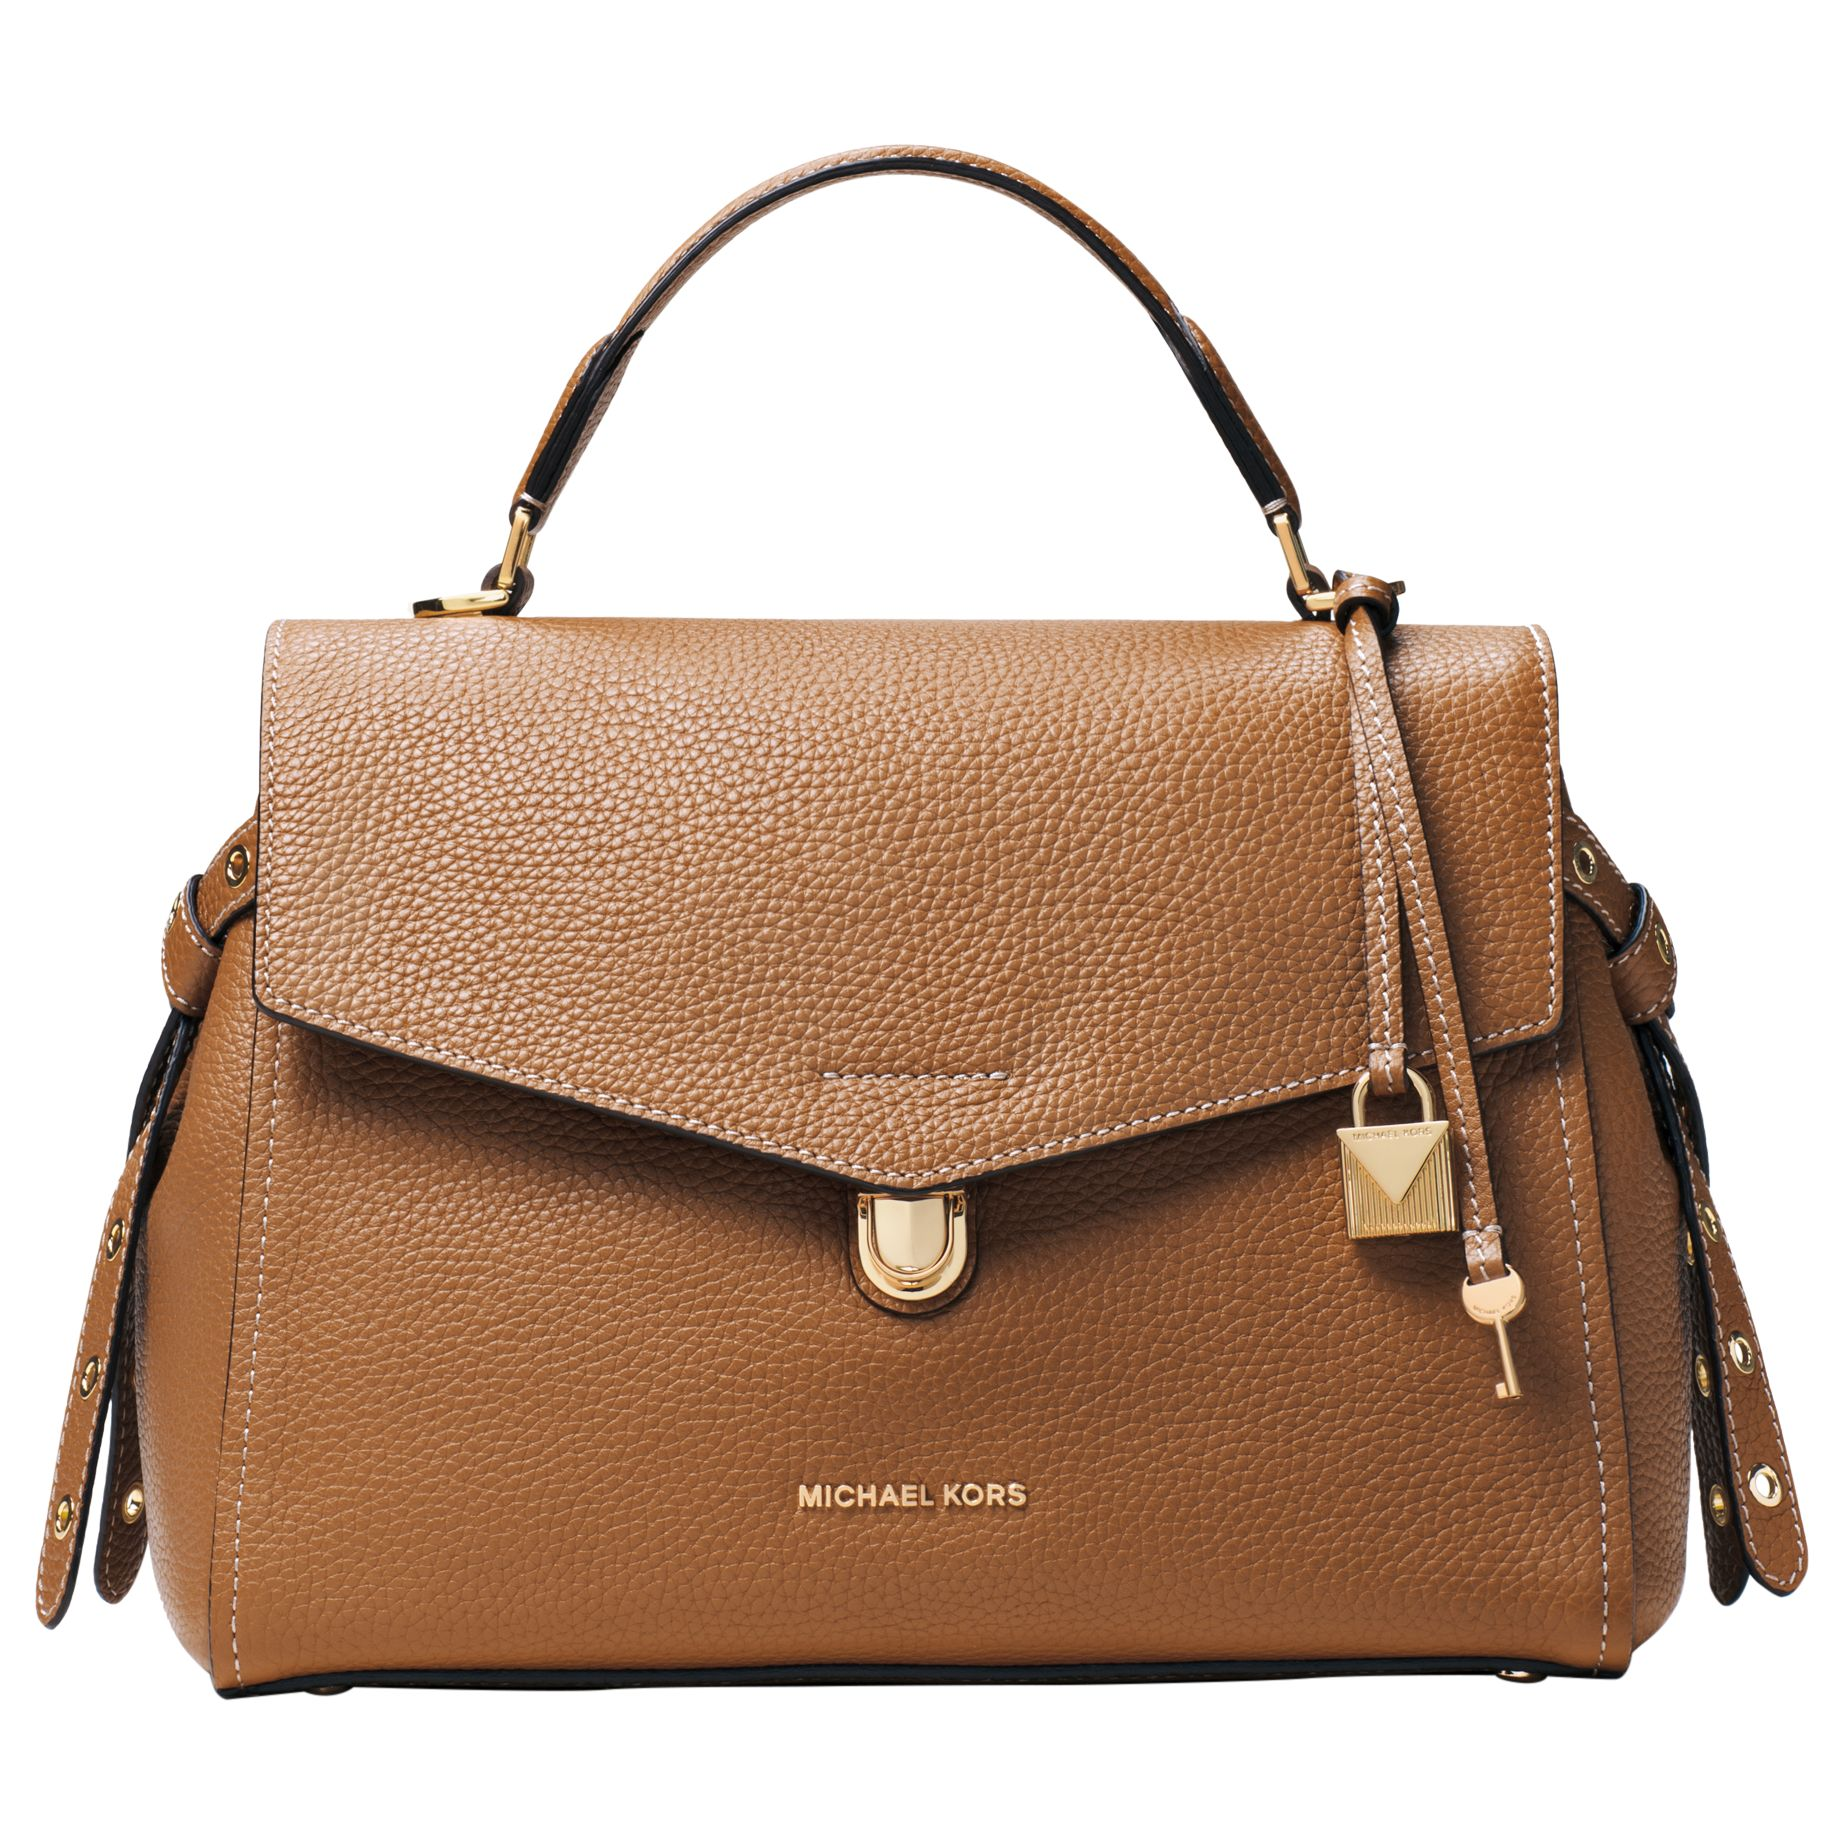 faad65771a3c8 MICHAEL Michael Kors Bristol Medium Leather Satchel Bag at John Lewis    Partners